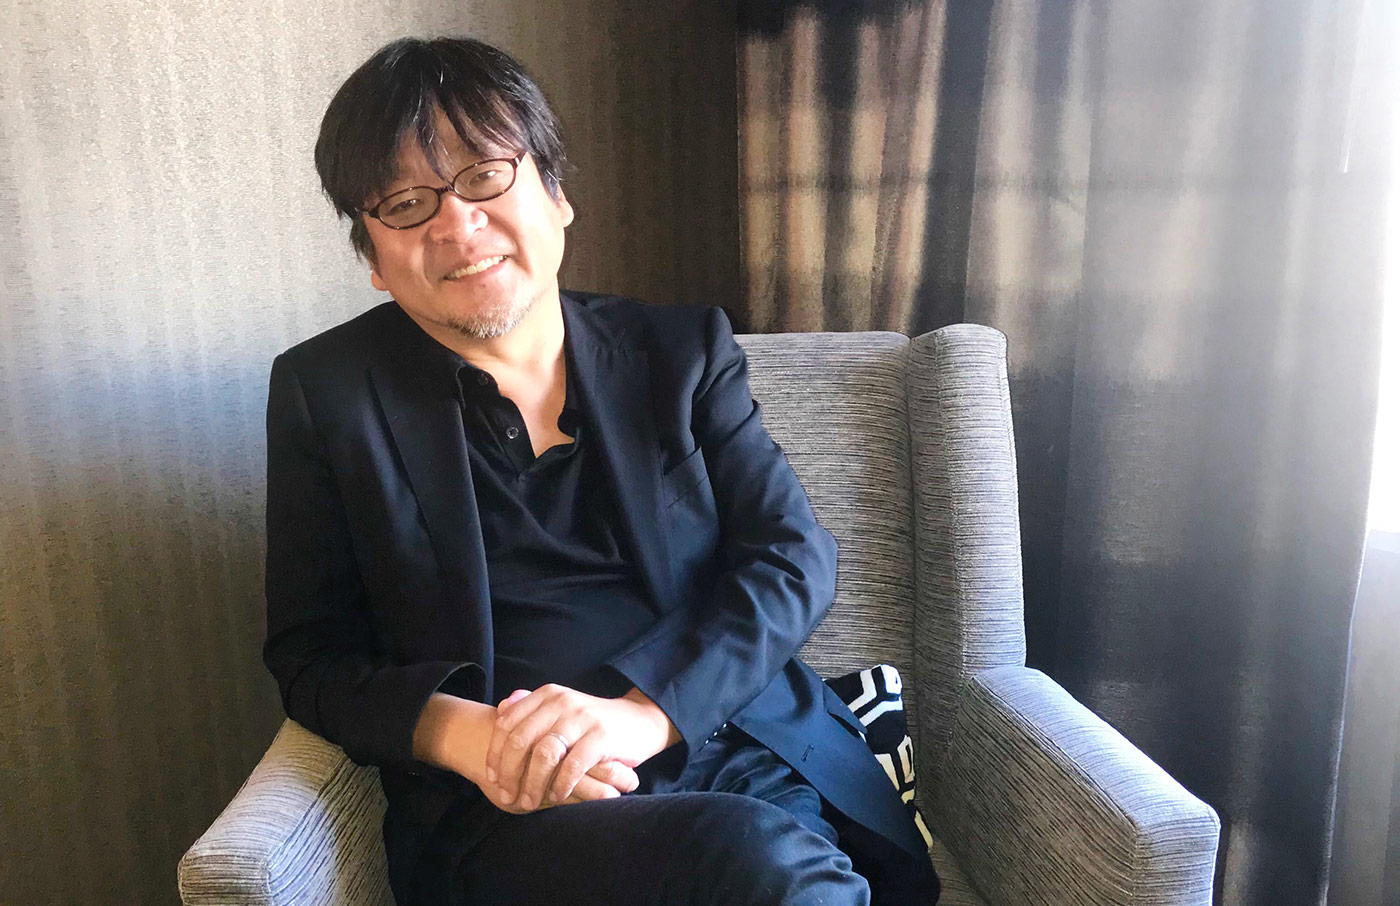 Mamoru Hosoda at Animation is Film festival last month in Los Angeles. Photo: Carlos Aguilar.